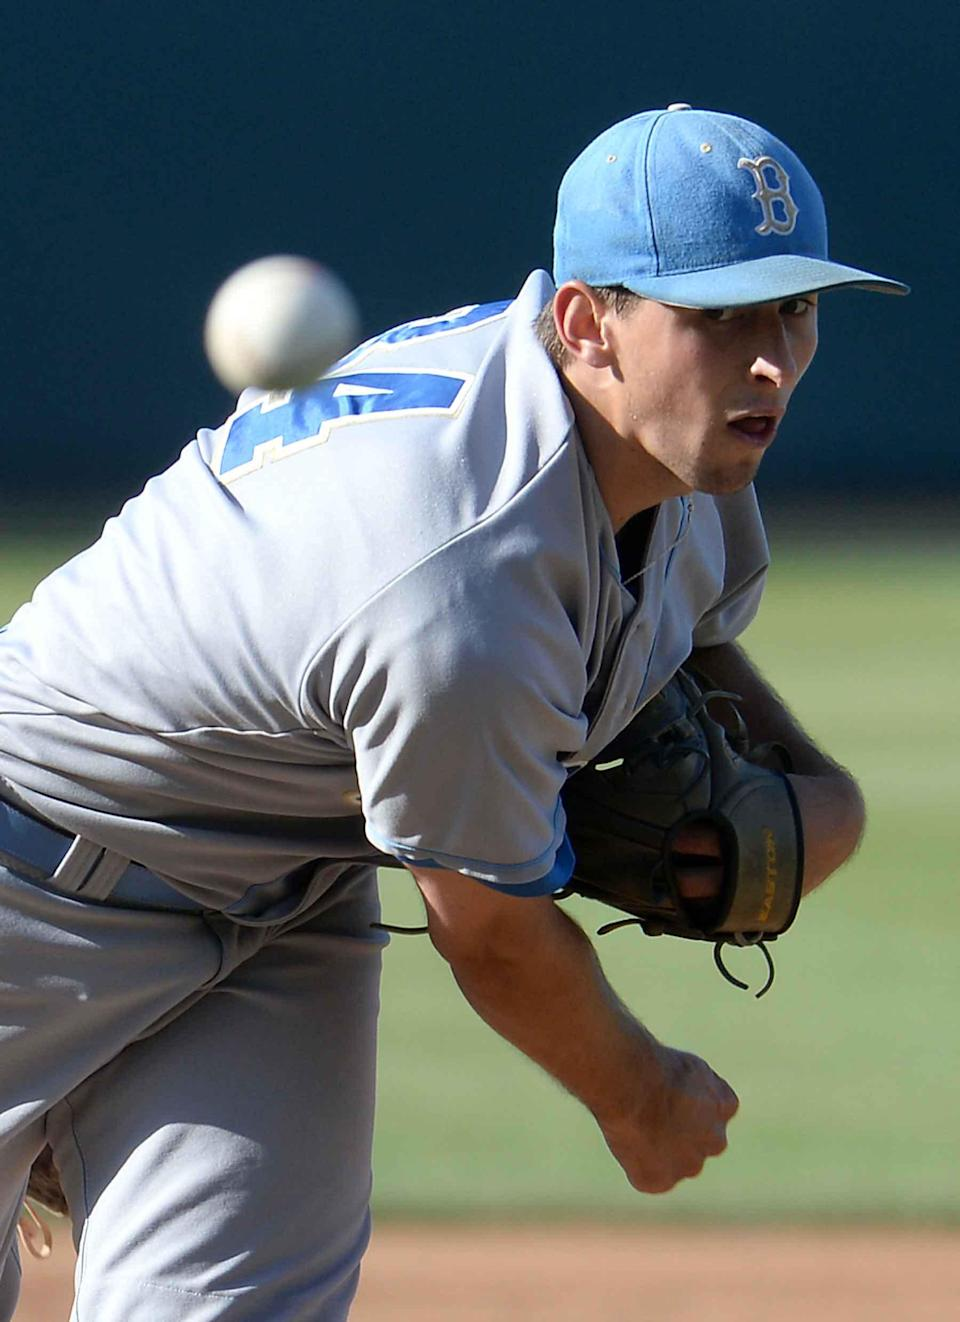 UCLA pitcher Cody Poteet throws during the fourth inning against Cal State Bakersfield during an NCAA college baseball tournament regional game in Los Angeles on Sunday, May 31, 2015. (AP Photo/Jayne Kamin-Oncea)